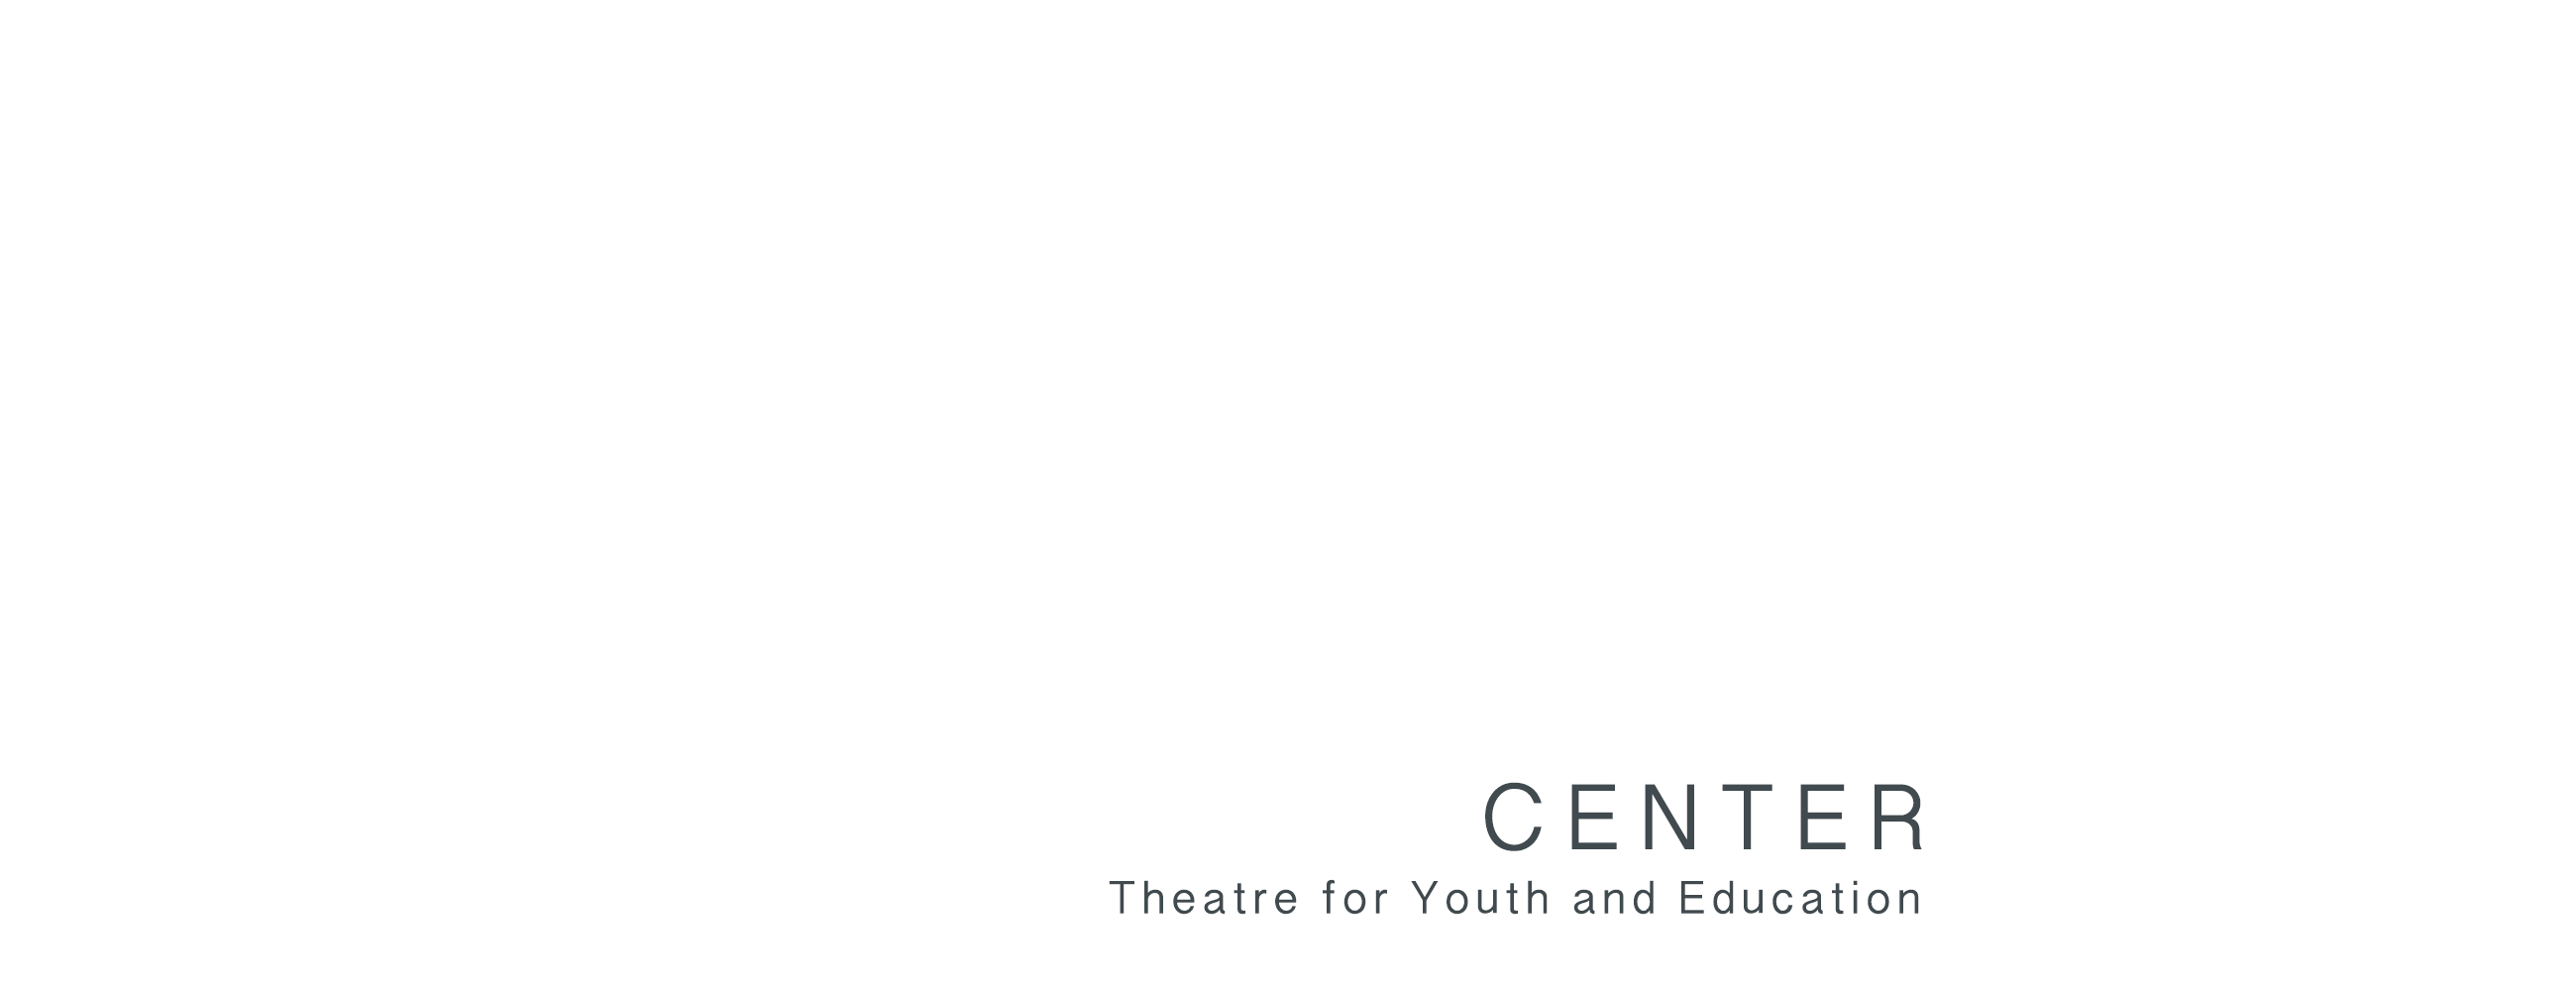 TYE Center, Theatre for Youth and Education